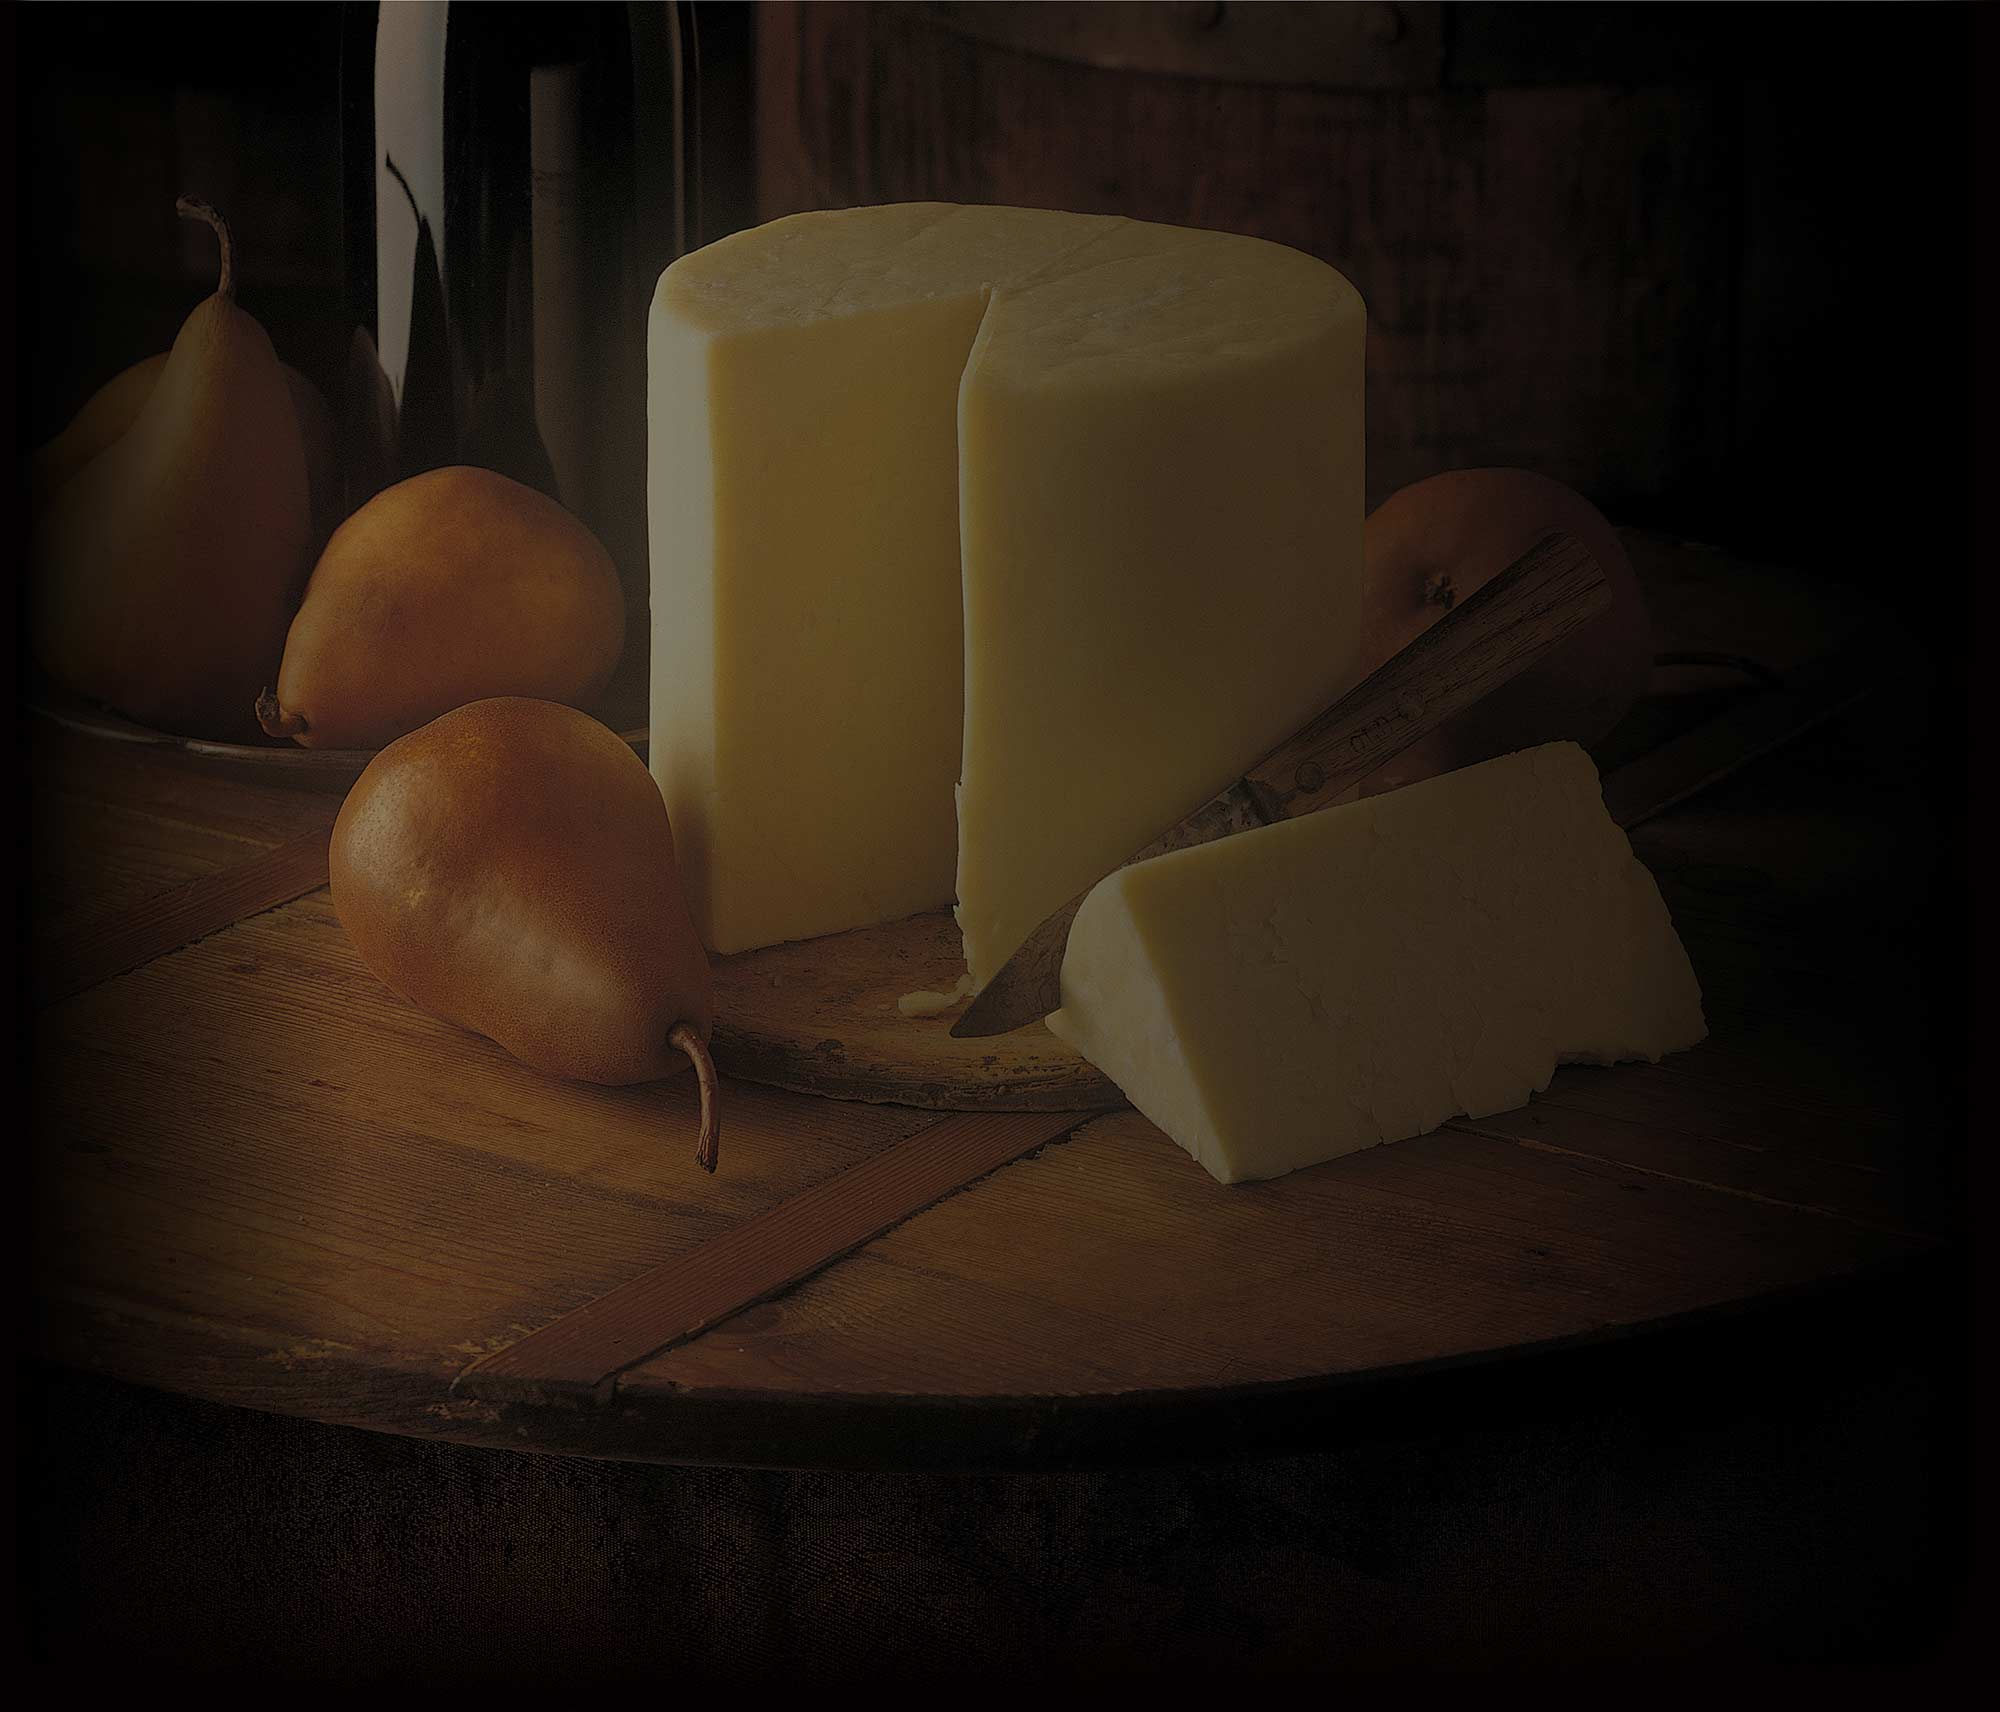 Background image: Cheese and pears